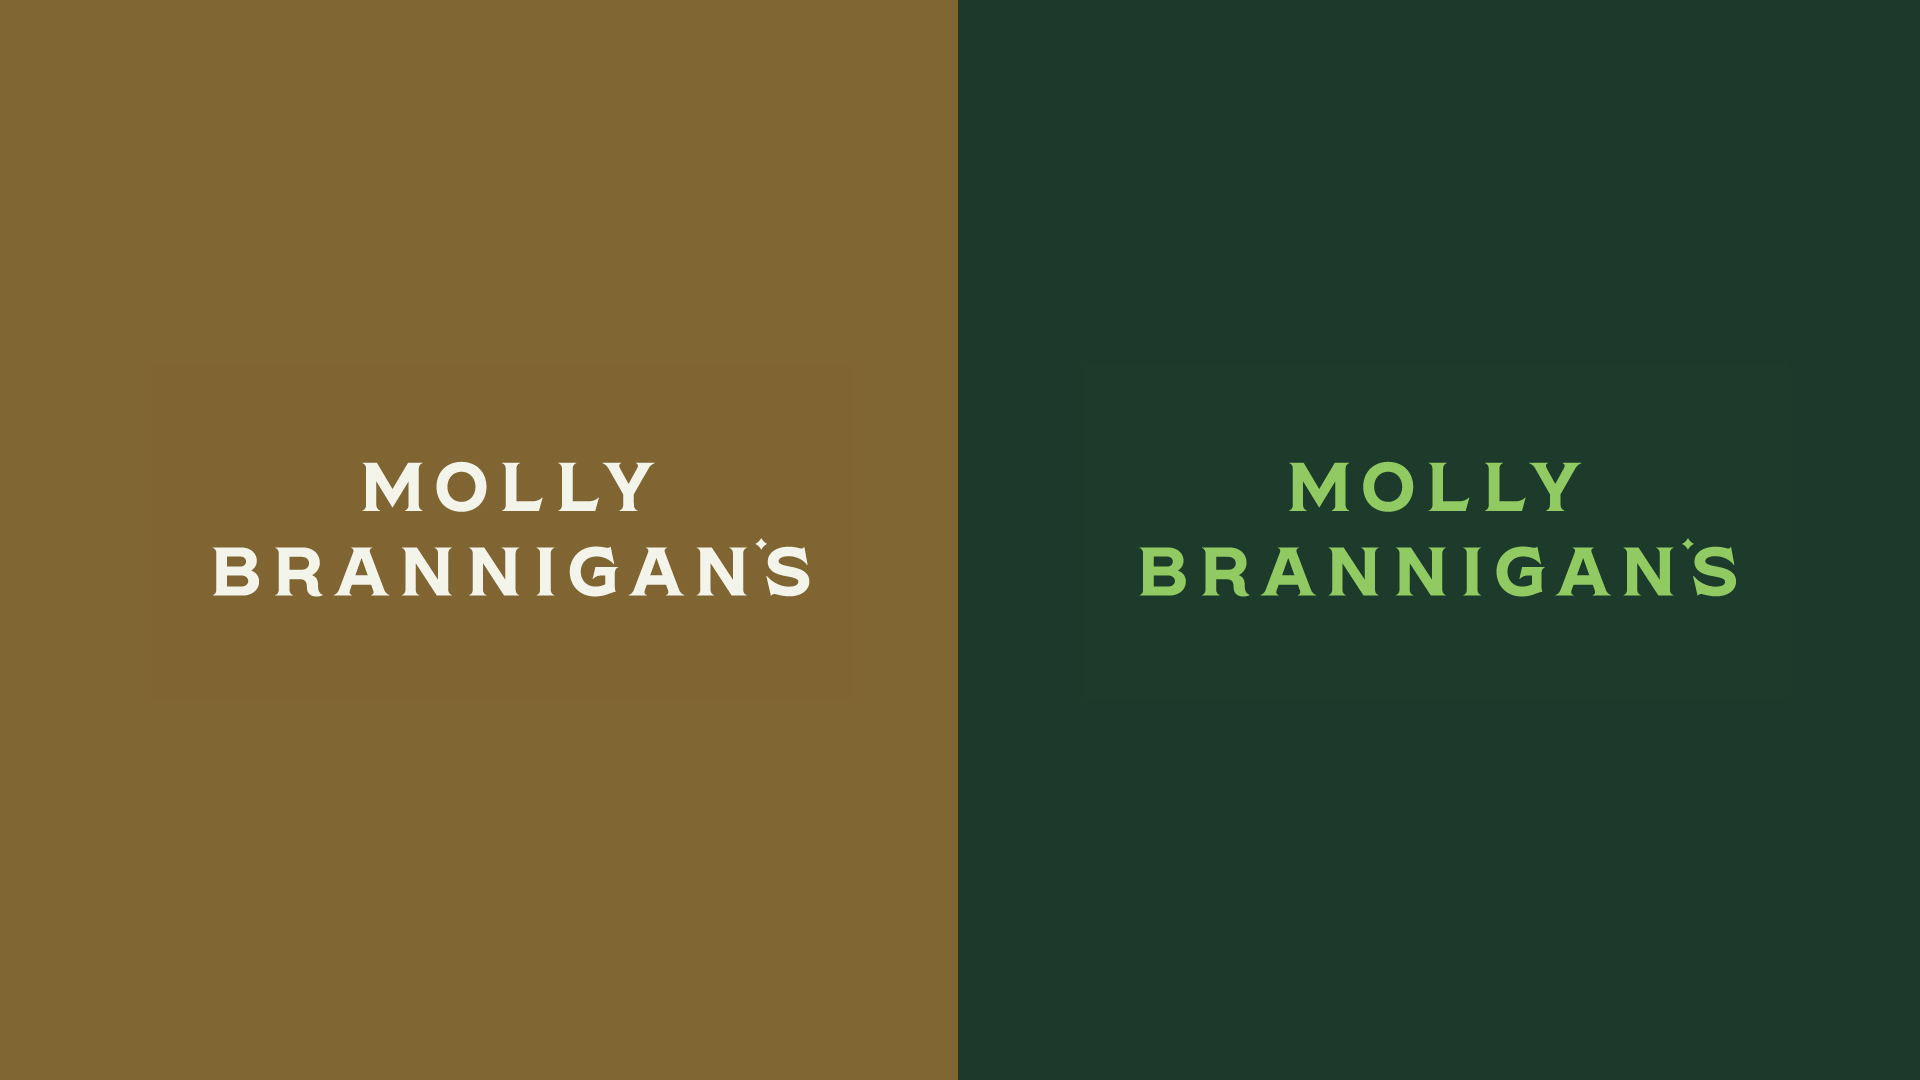 molly-brannigans-logo-alternatives